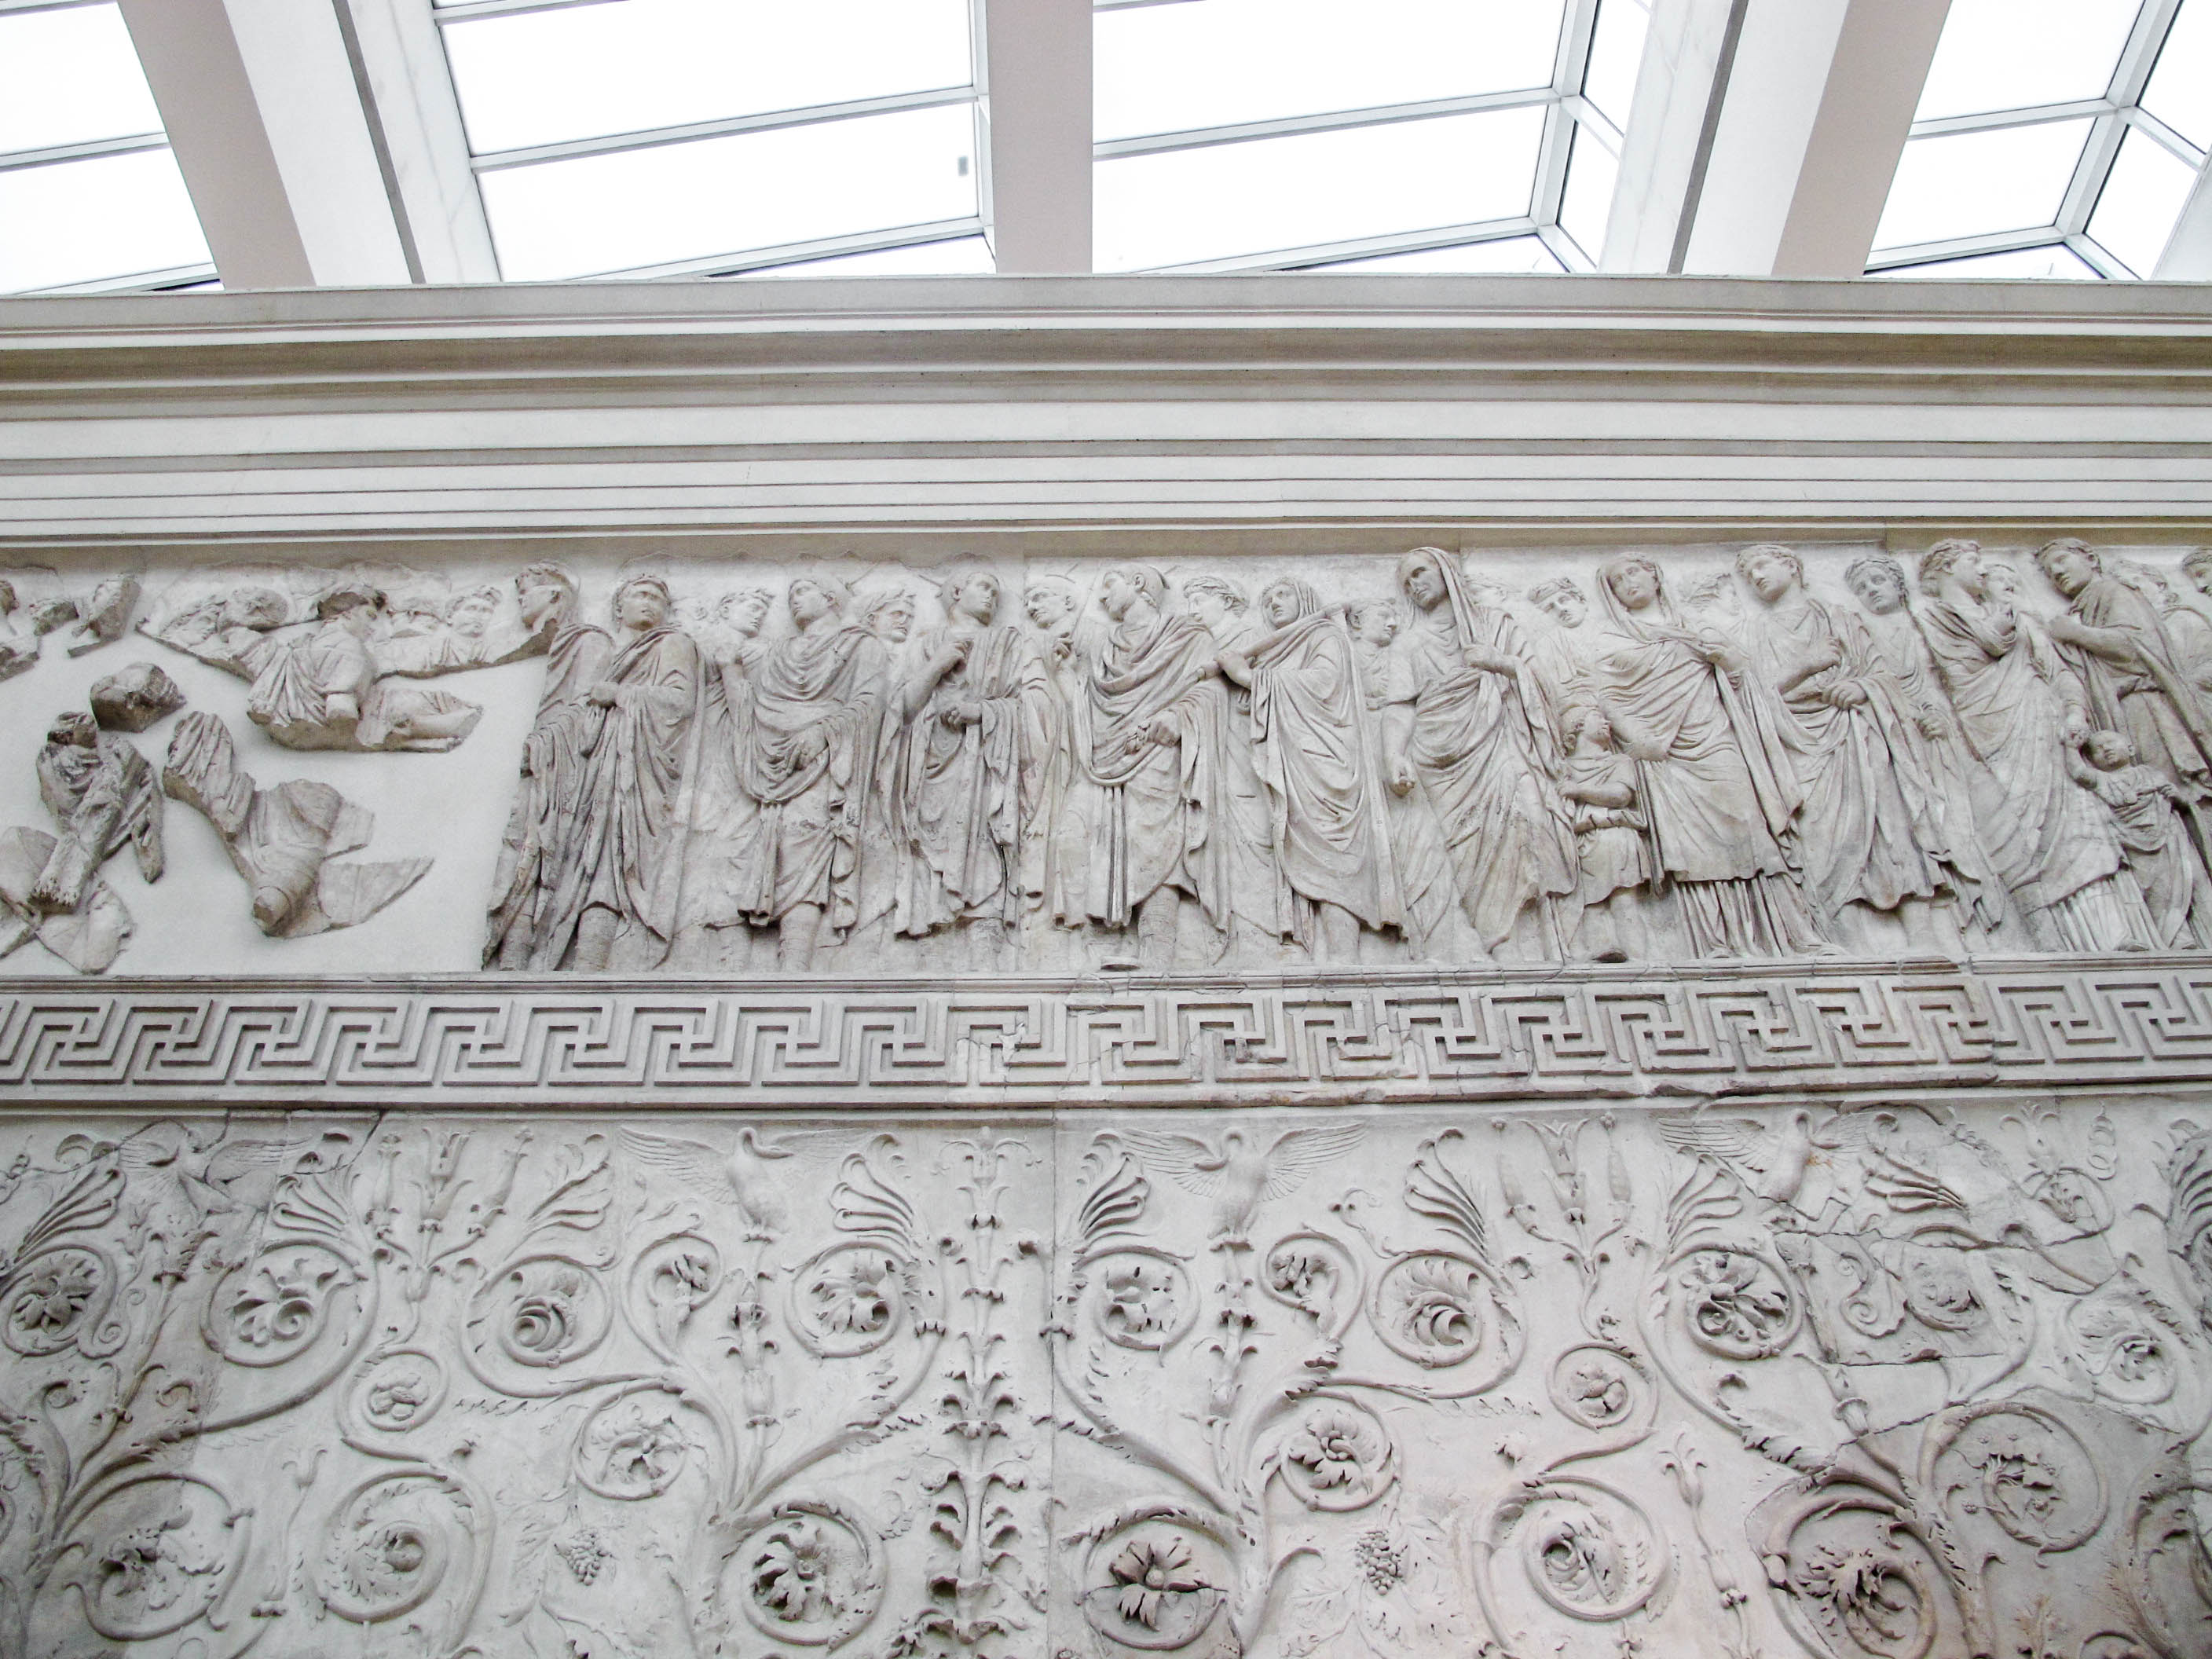 Museo dell'Ara Pacis